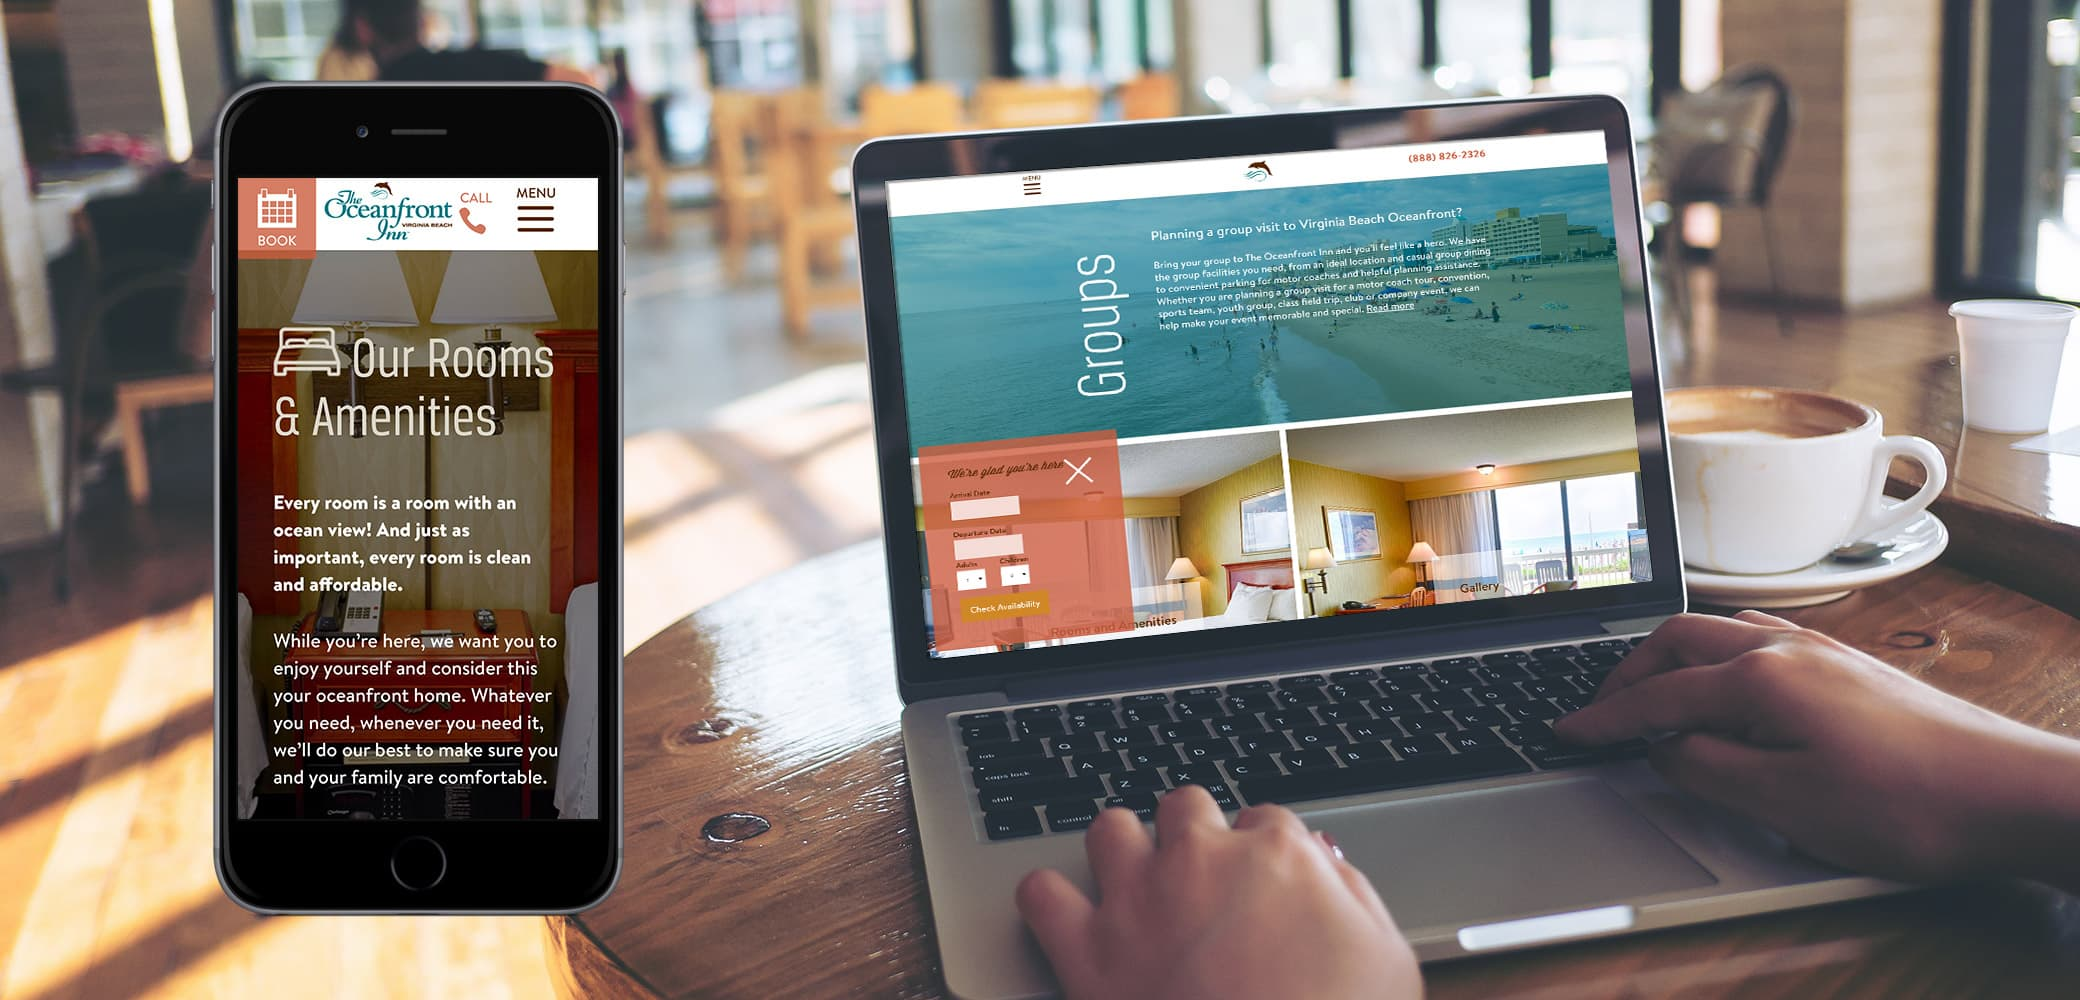 Oceanfront Inn Website Strategy, Design & Management by Red Chalk Studios